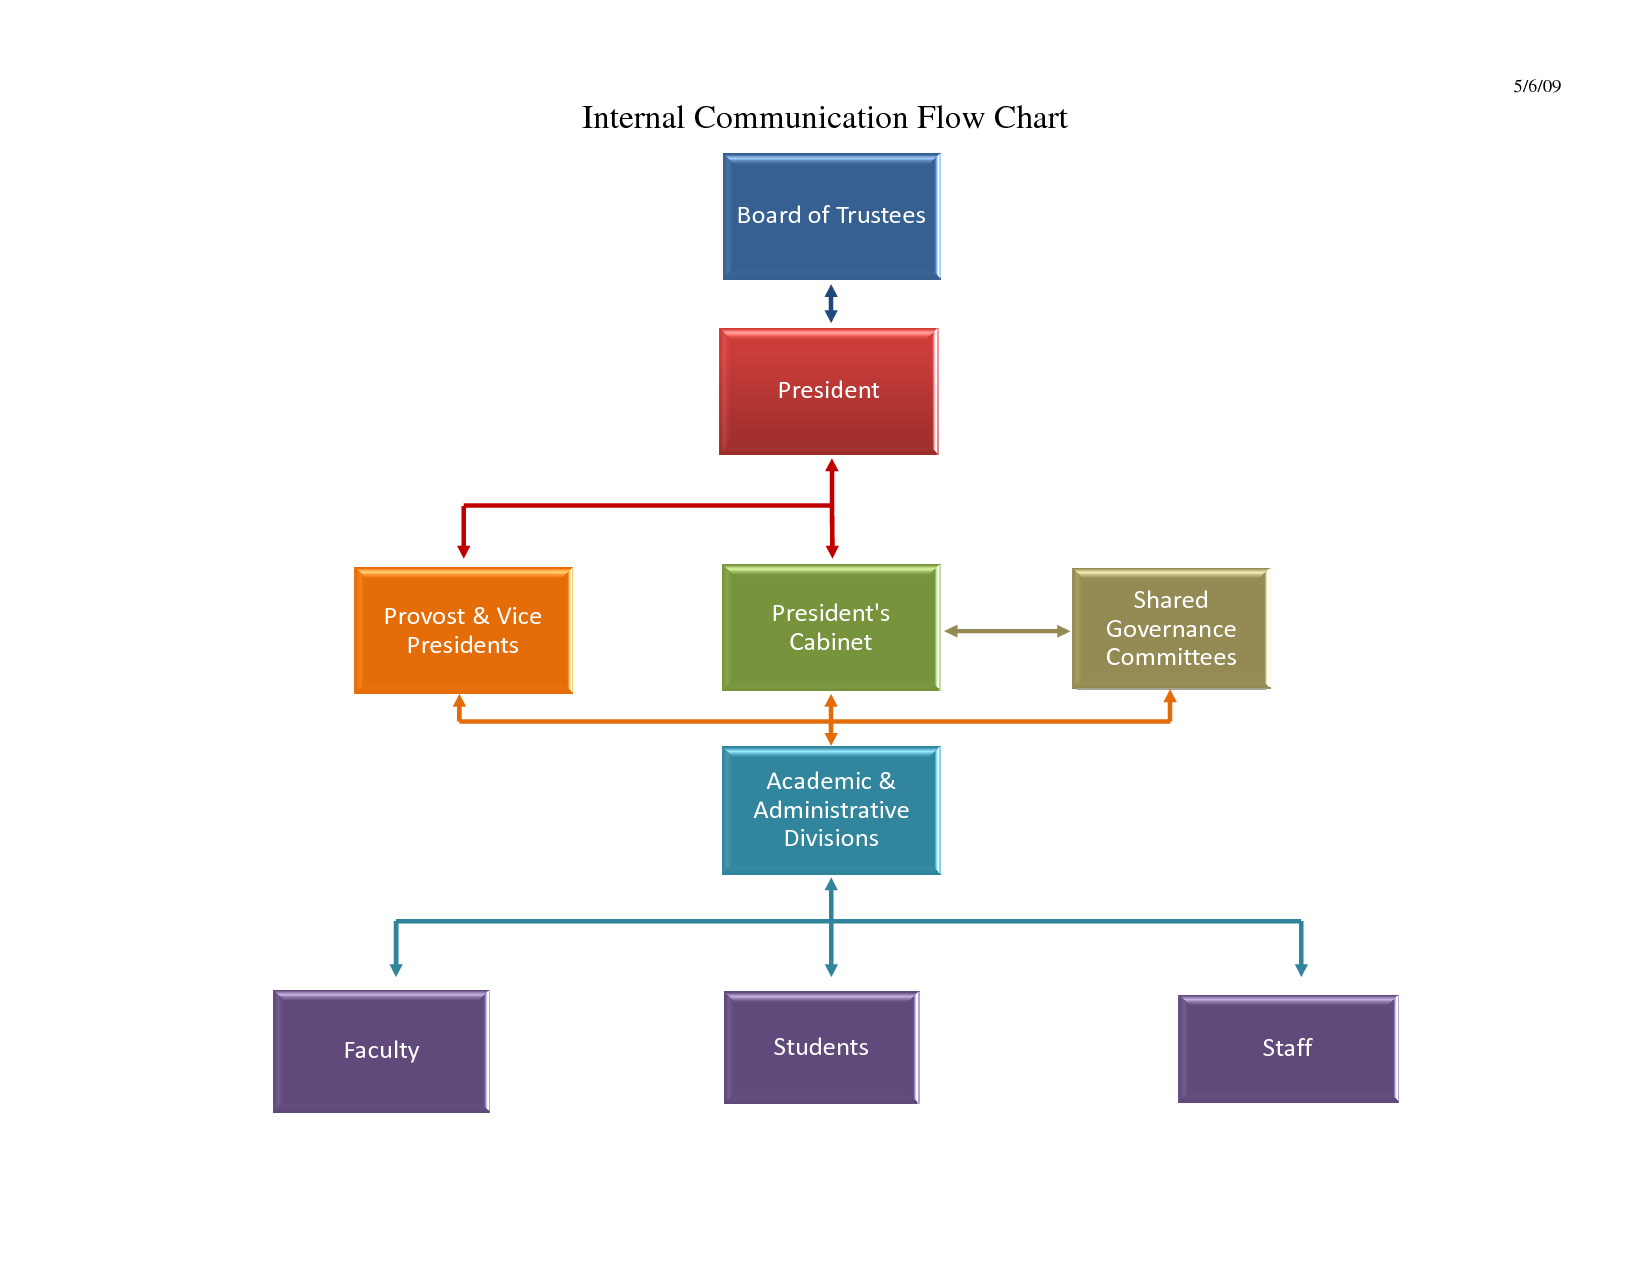 Communication Flow Chart Template Flow Chart Pinterest Chart - Free organizational chart template word 2010